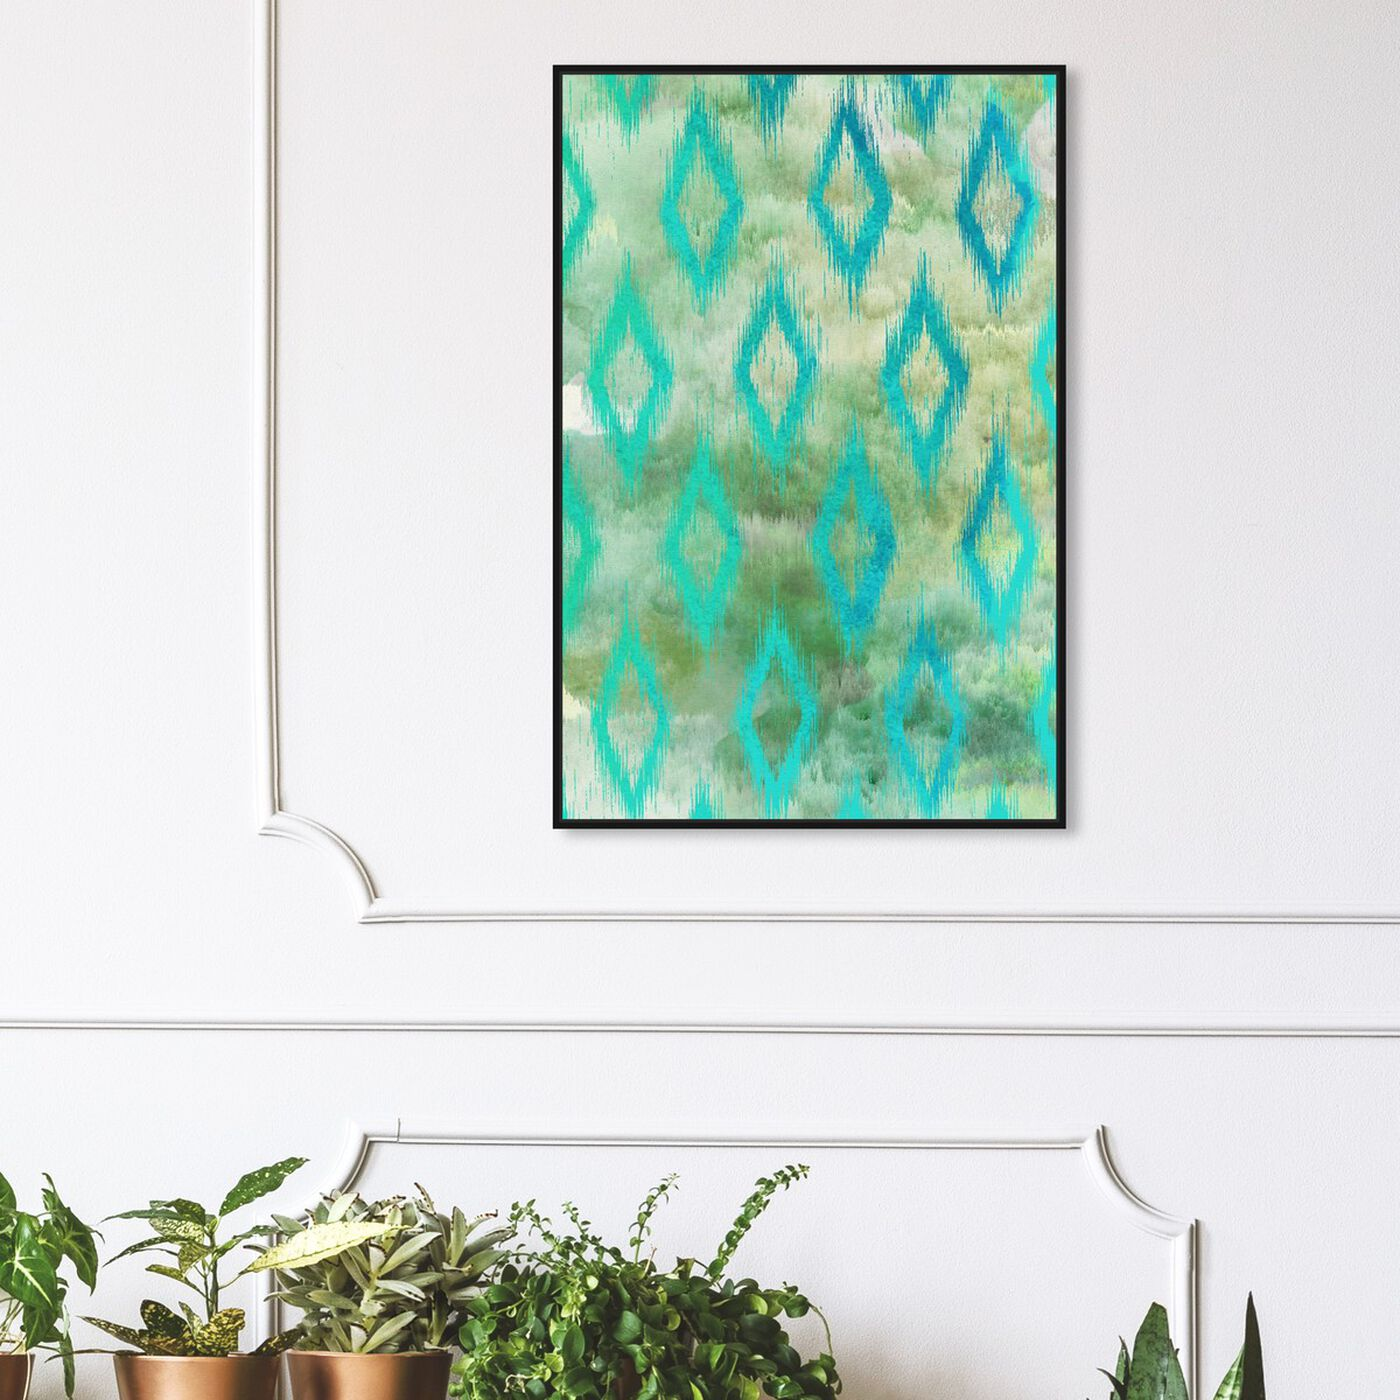 Hanging view of Pondycherry featuring abstract and patterns art.